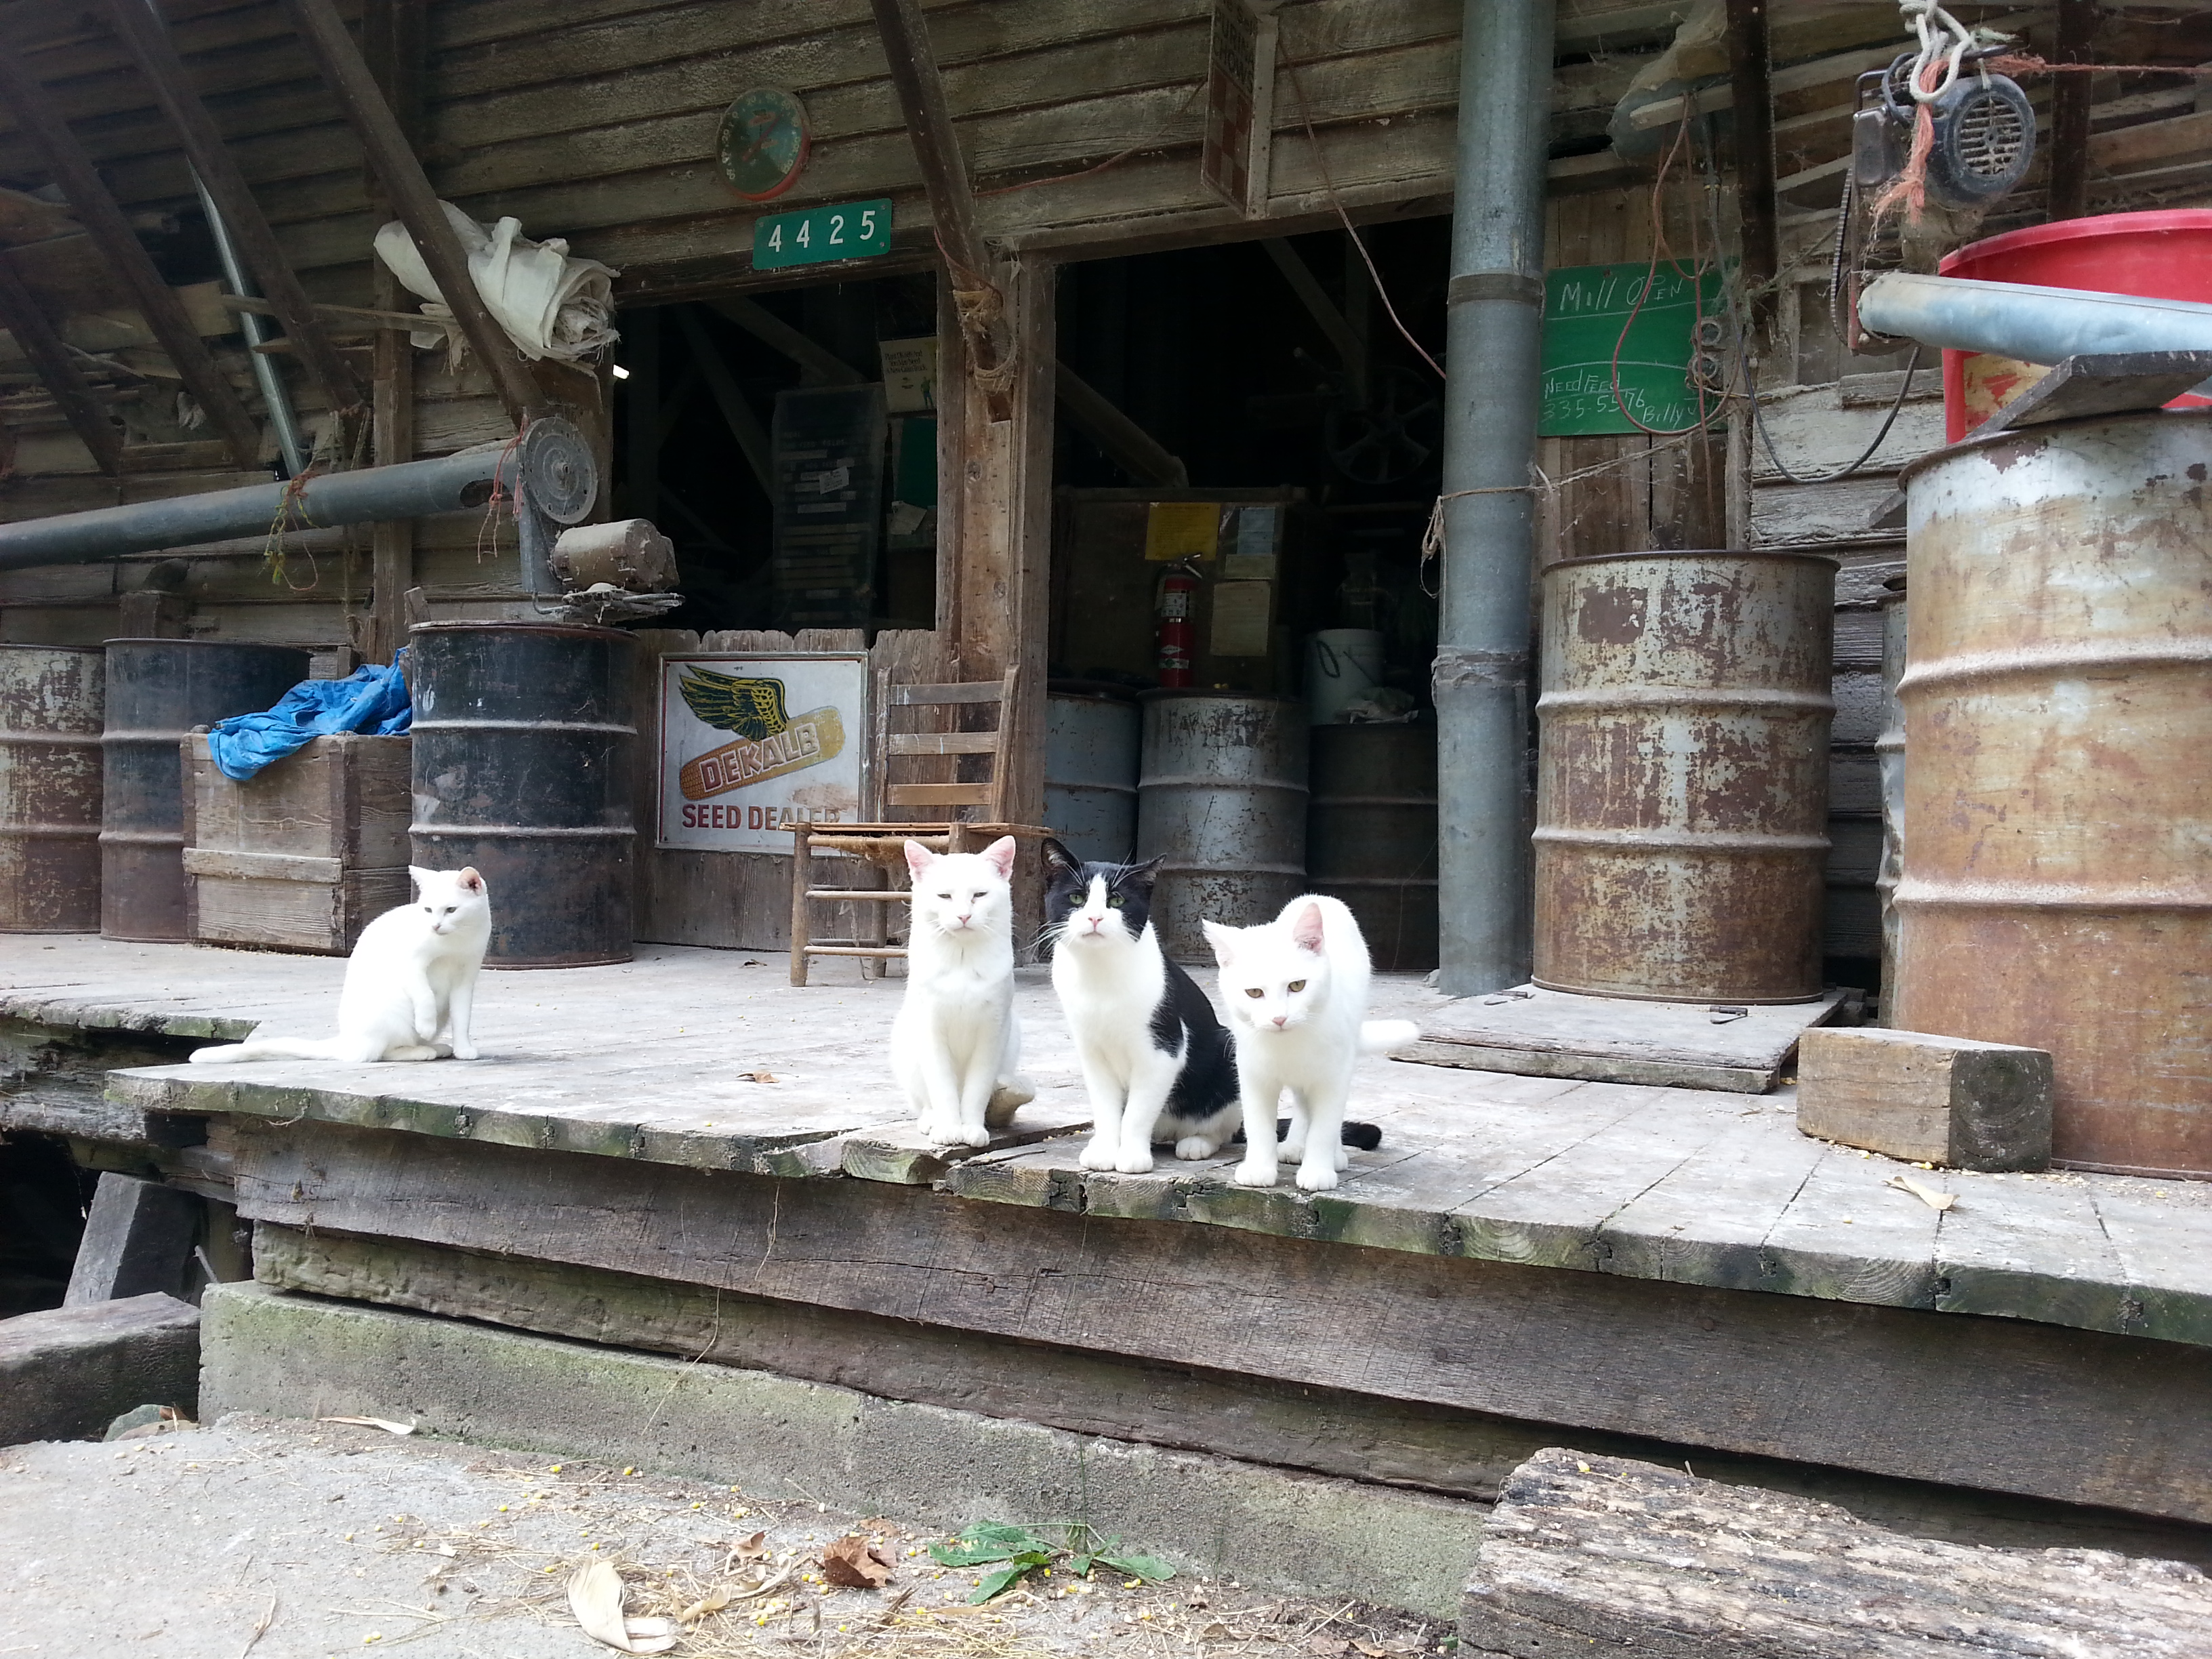 A few felines visiting the mill.